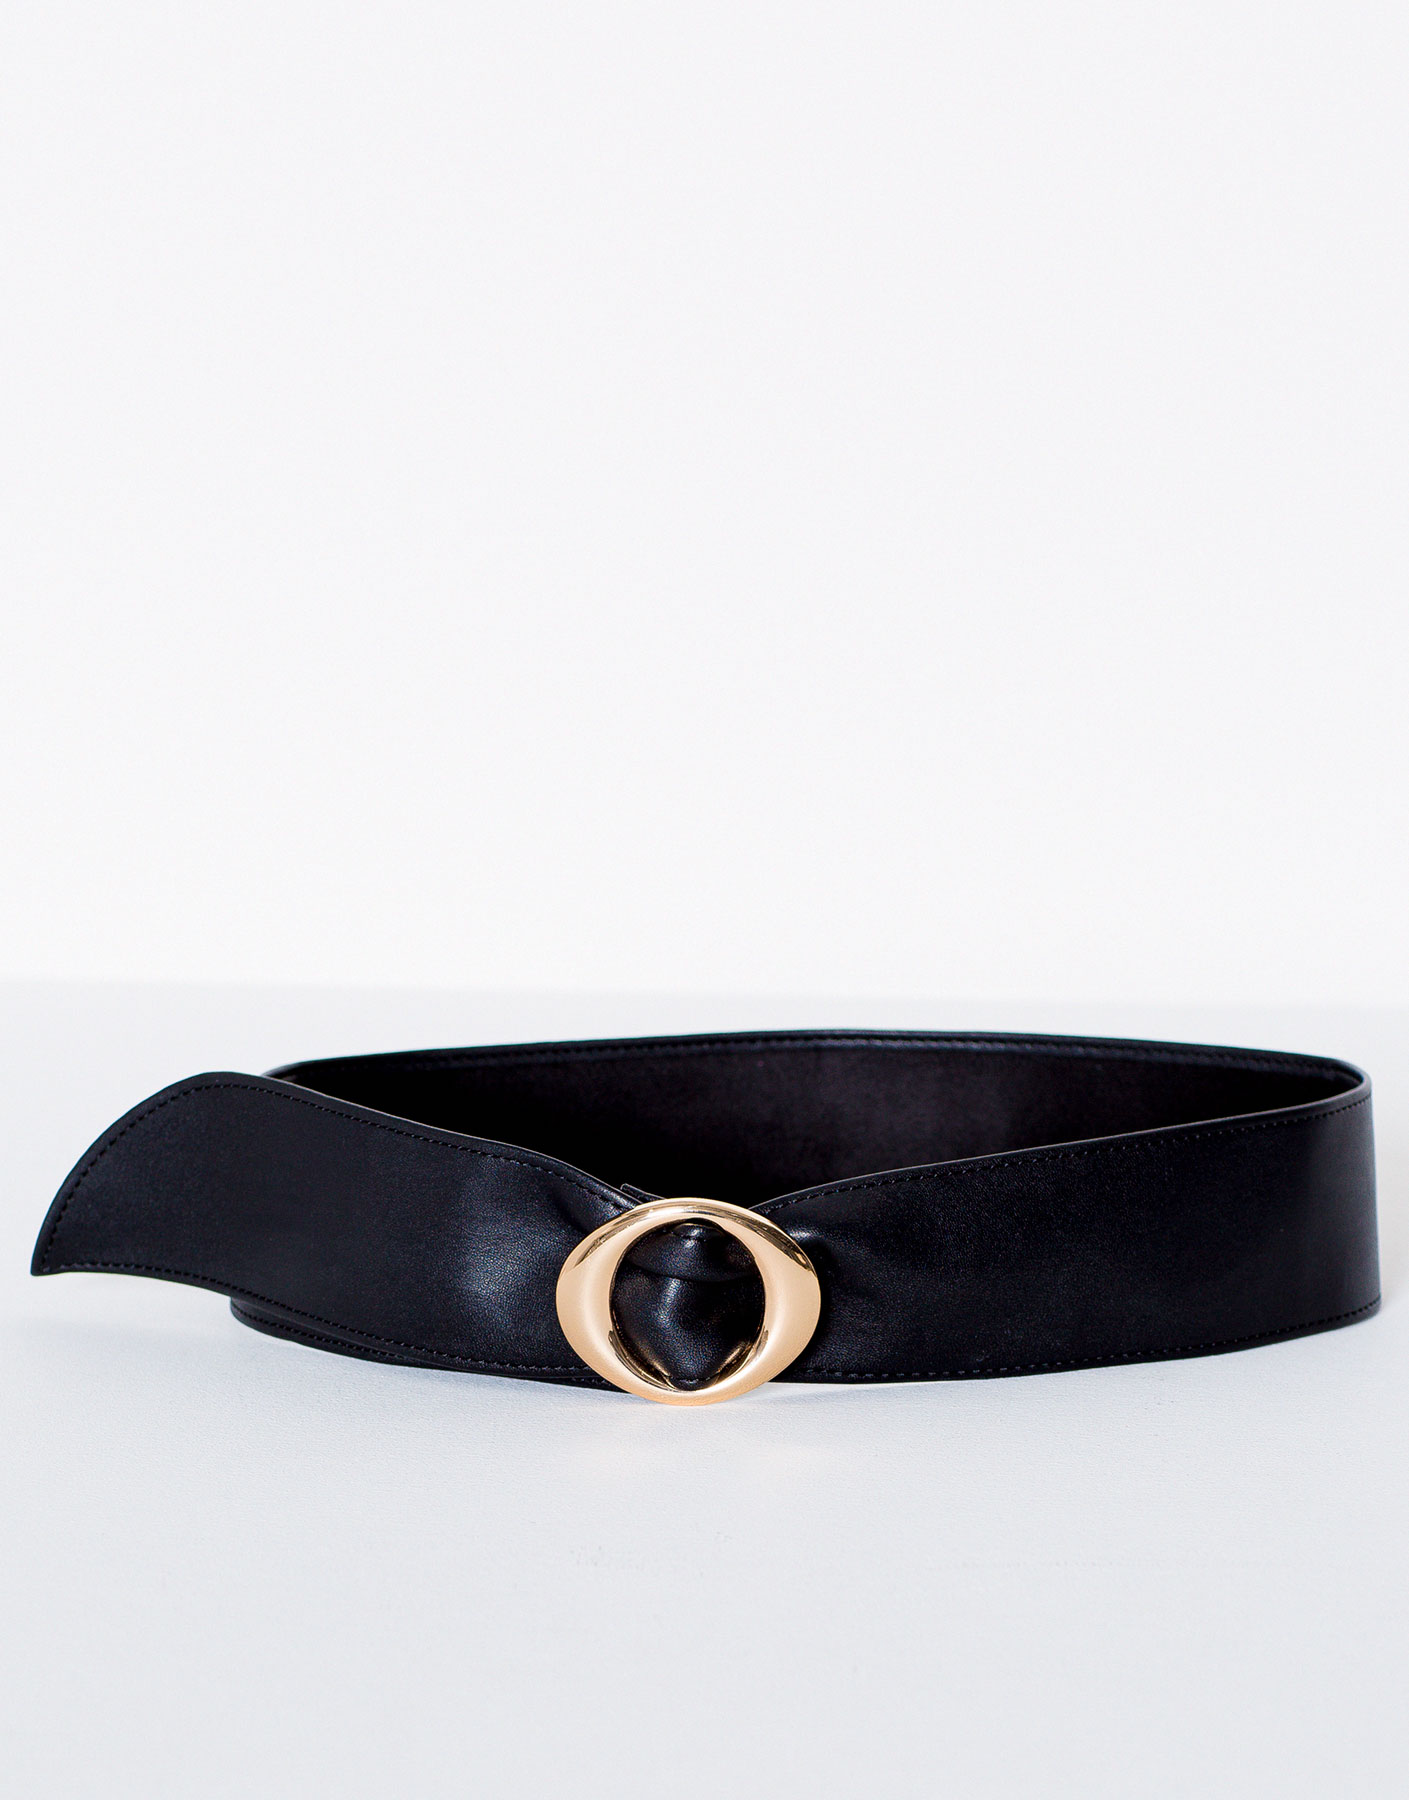 Soft belt with round buckle